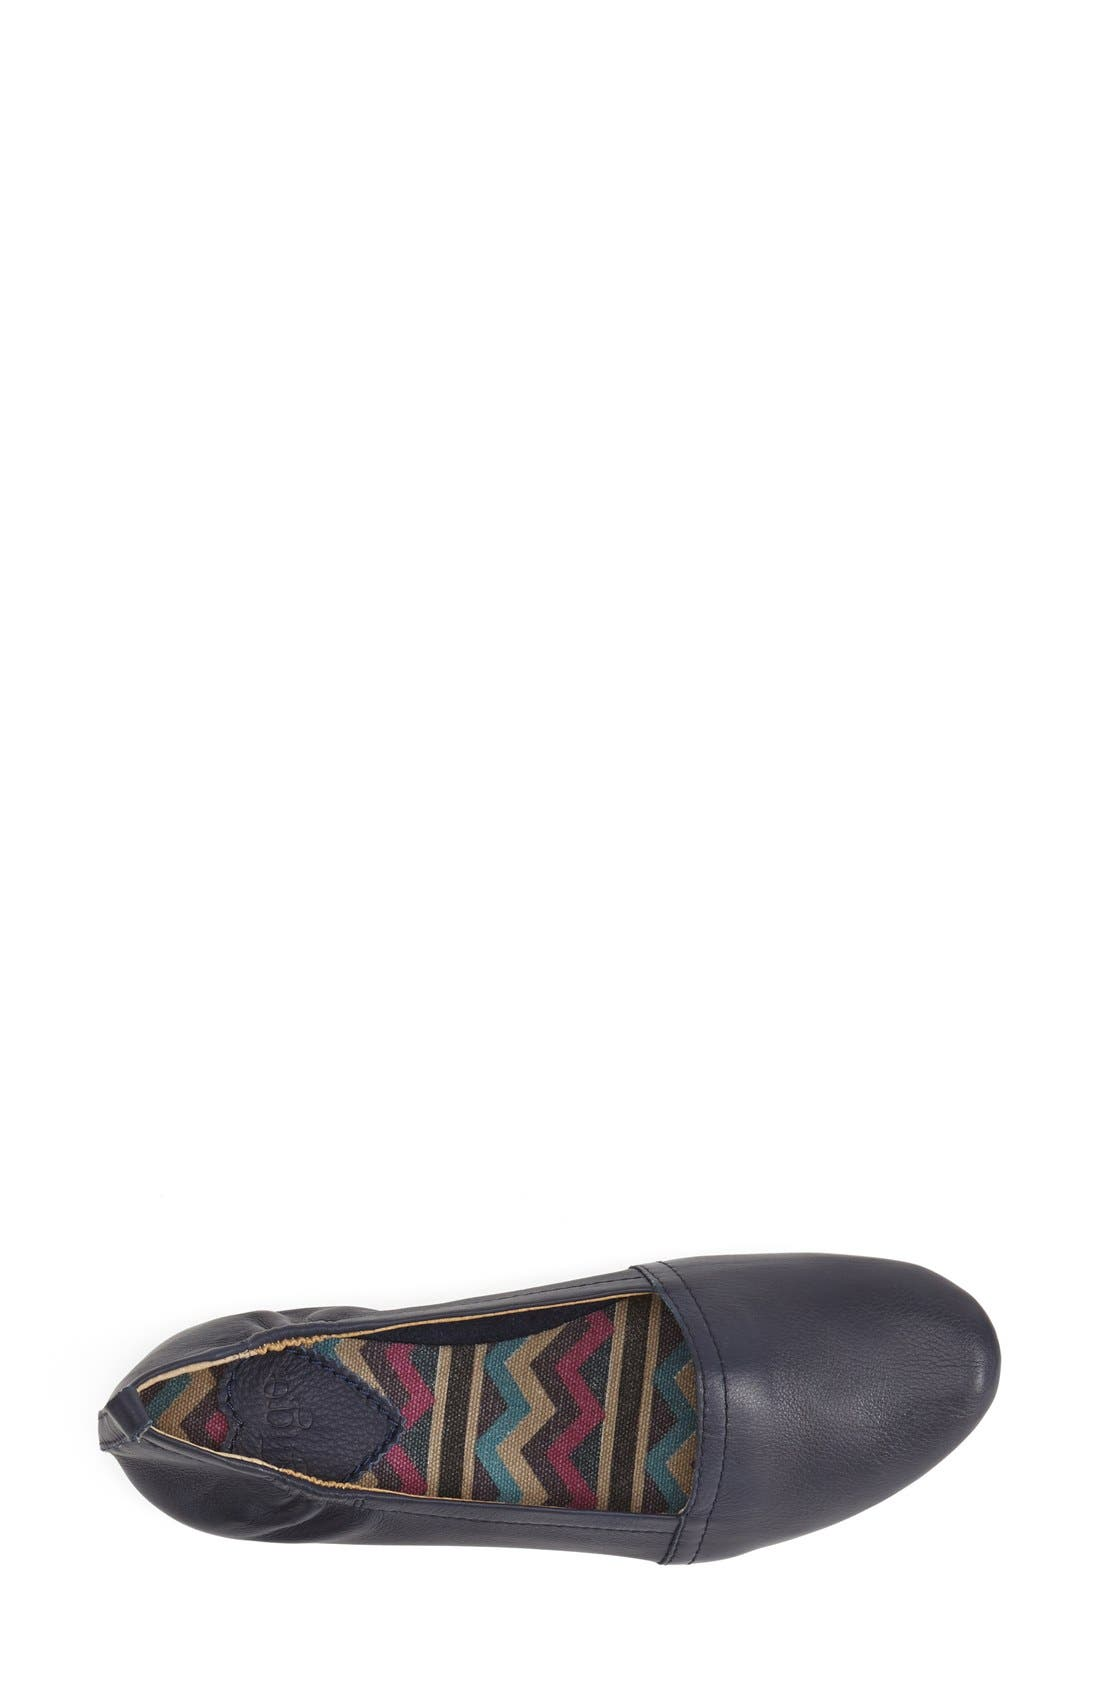 'Bettie' Leather Flat,                             Alternate thumbnail 15, color,